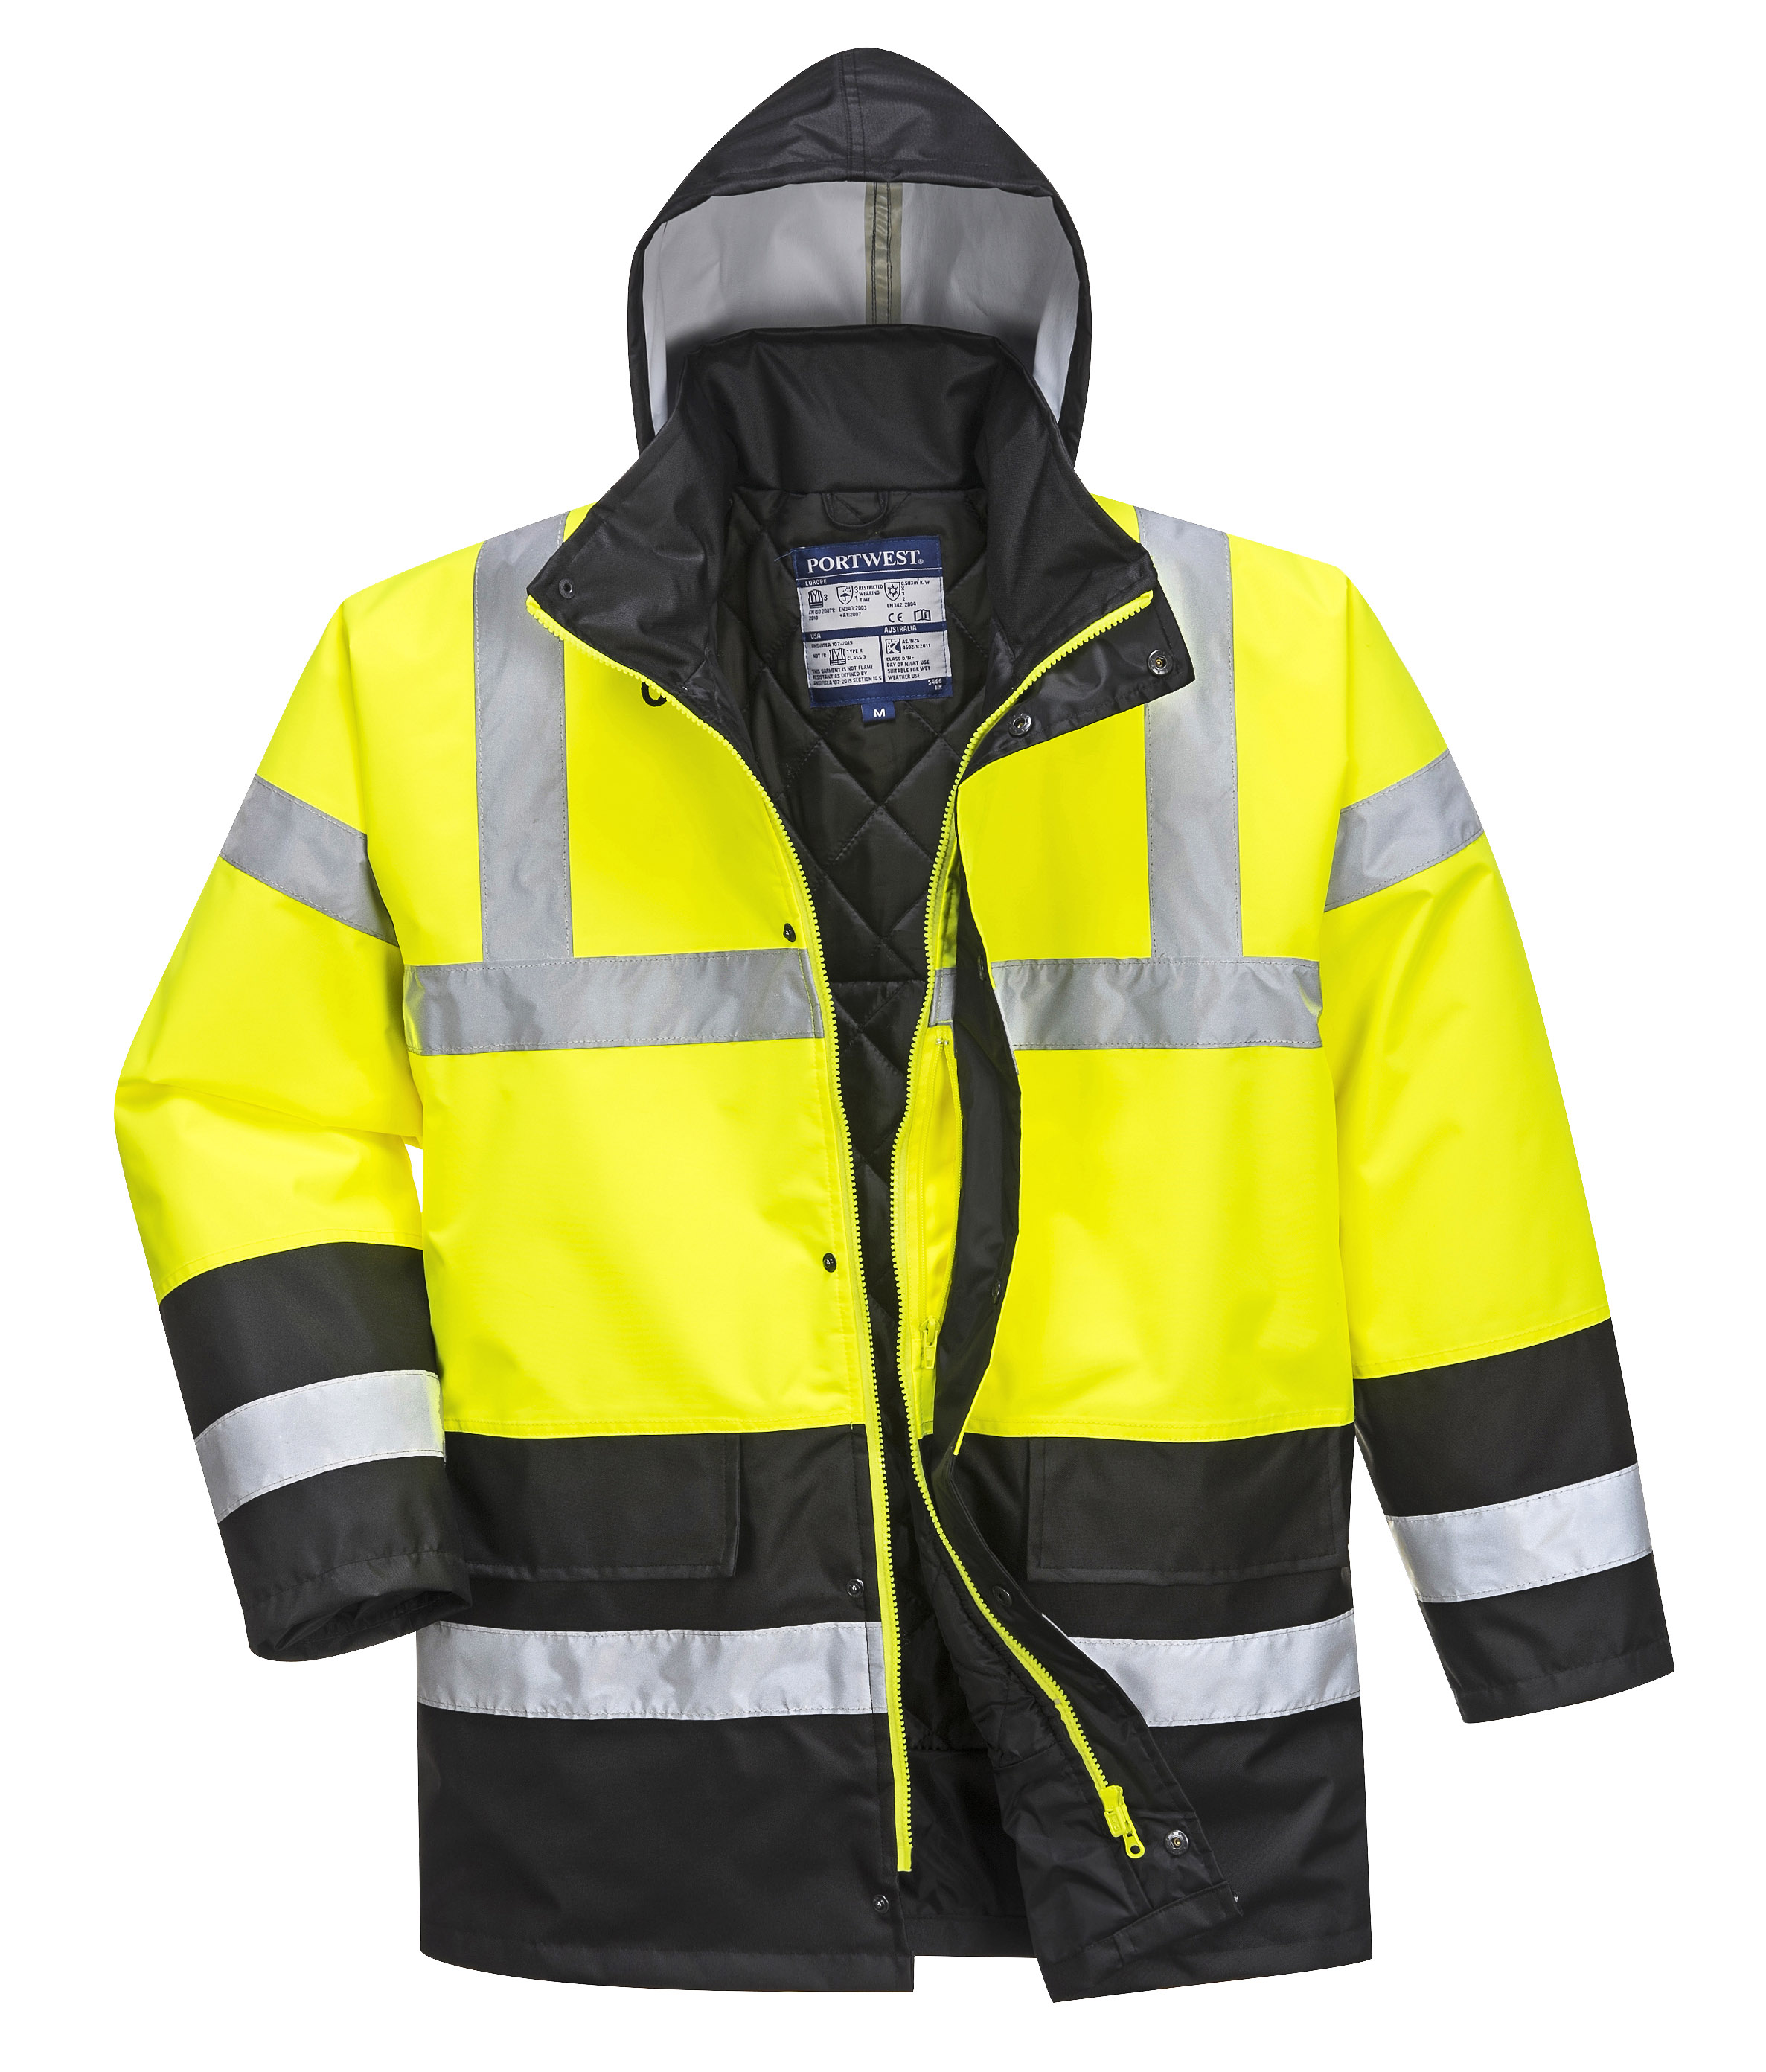 Portwest US466 High Visibility Winter Jacket — iWantWorkwear 39a13a09a330